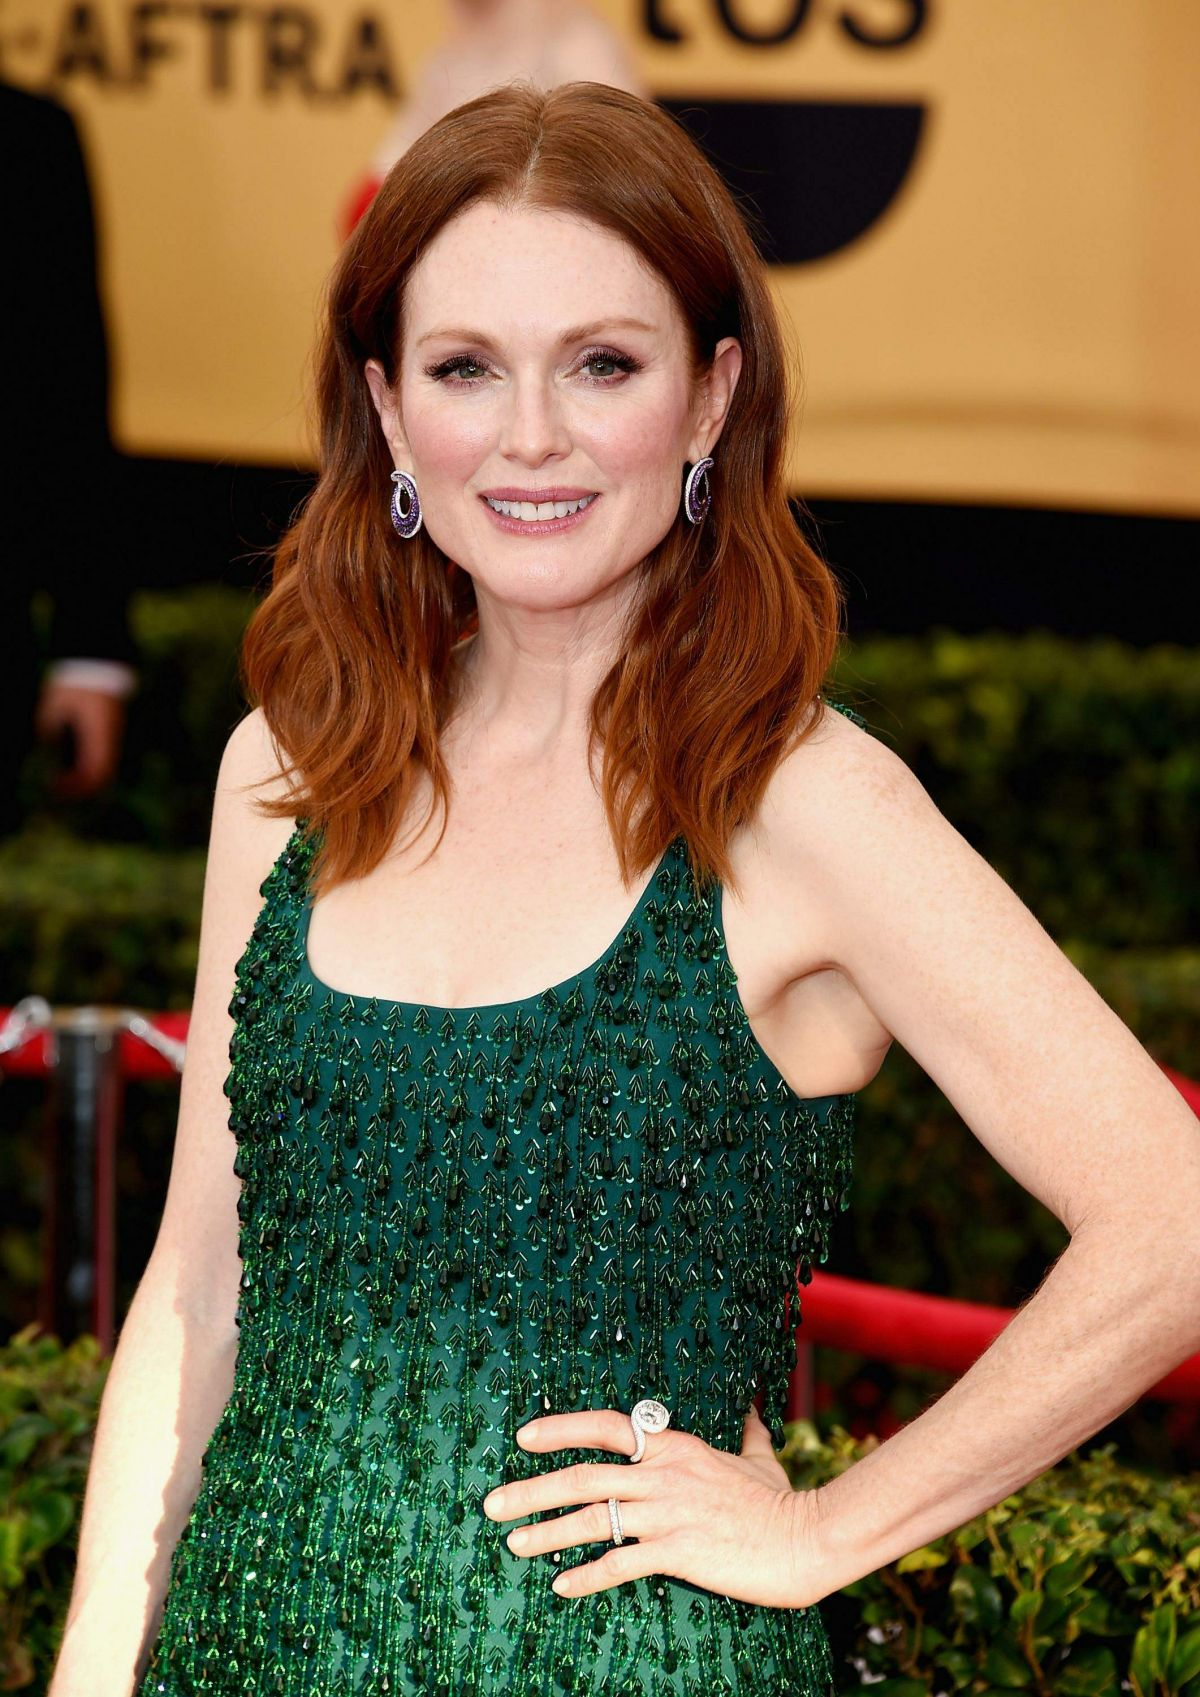 Julianne moore instagram